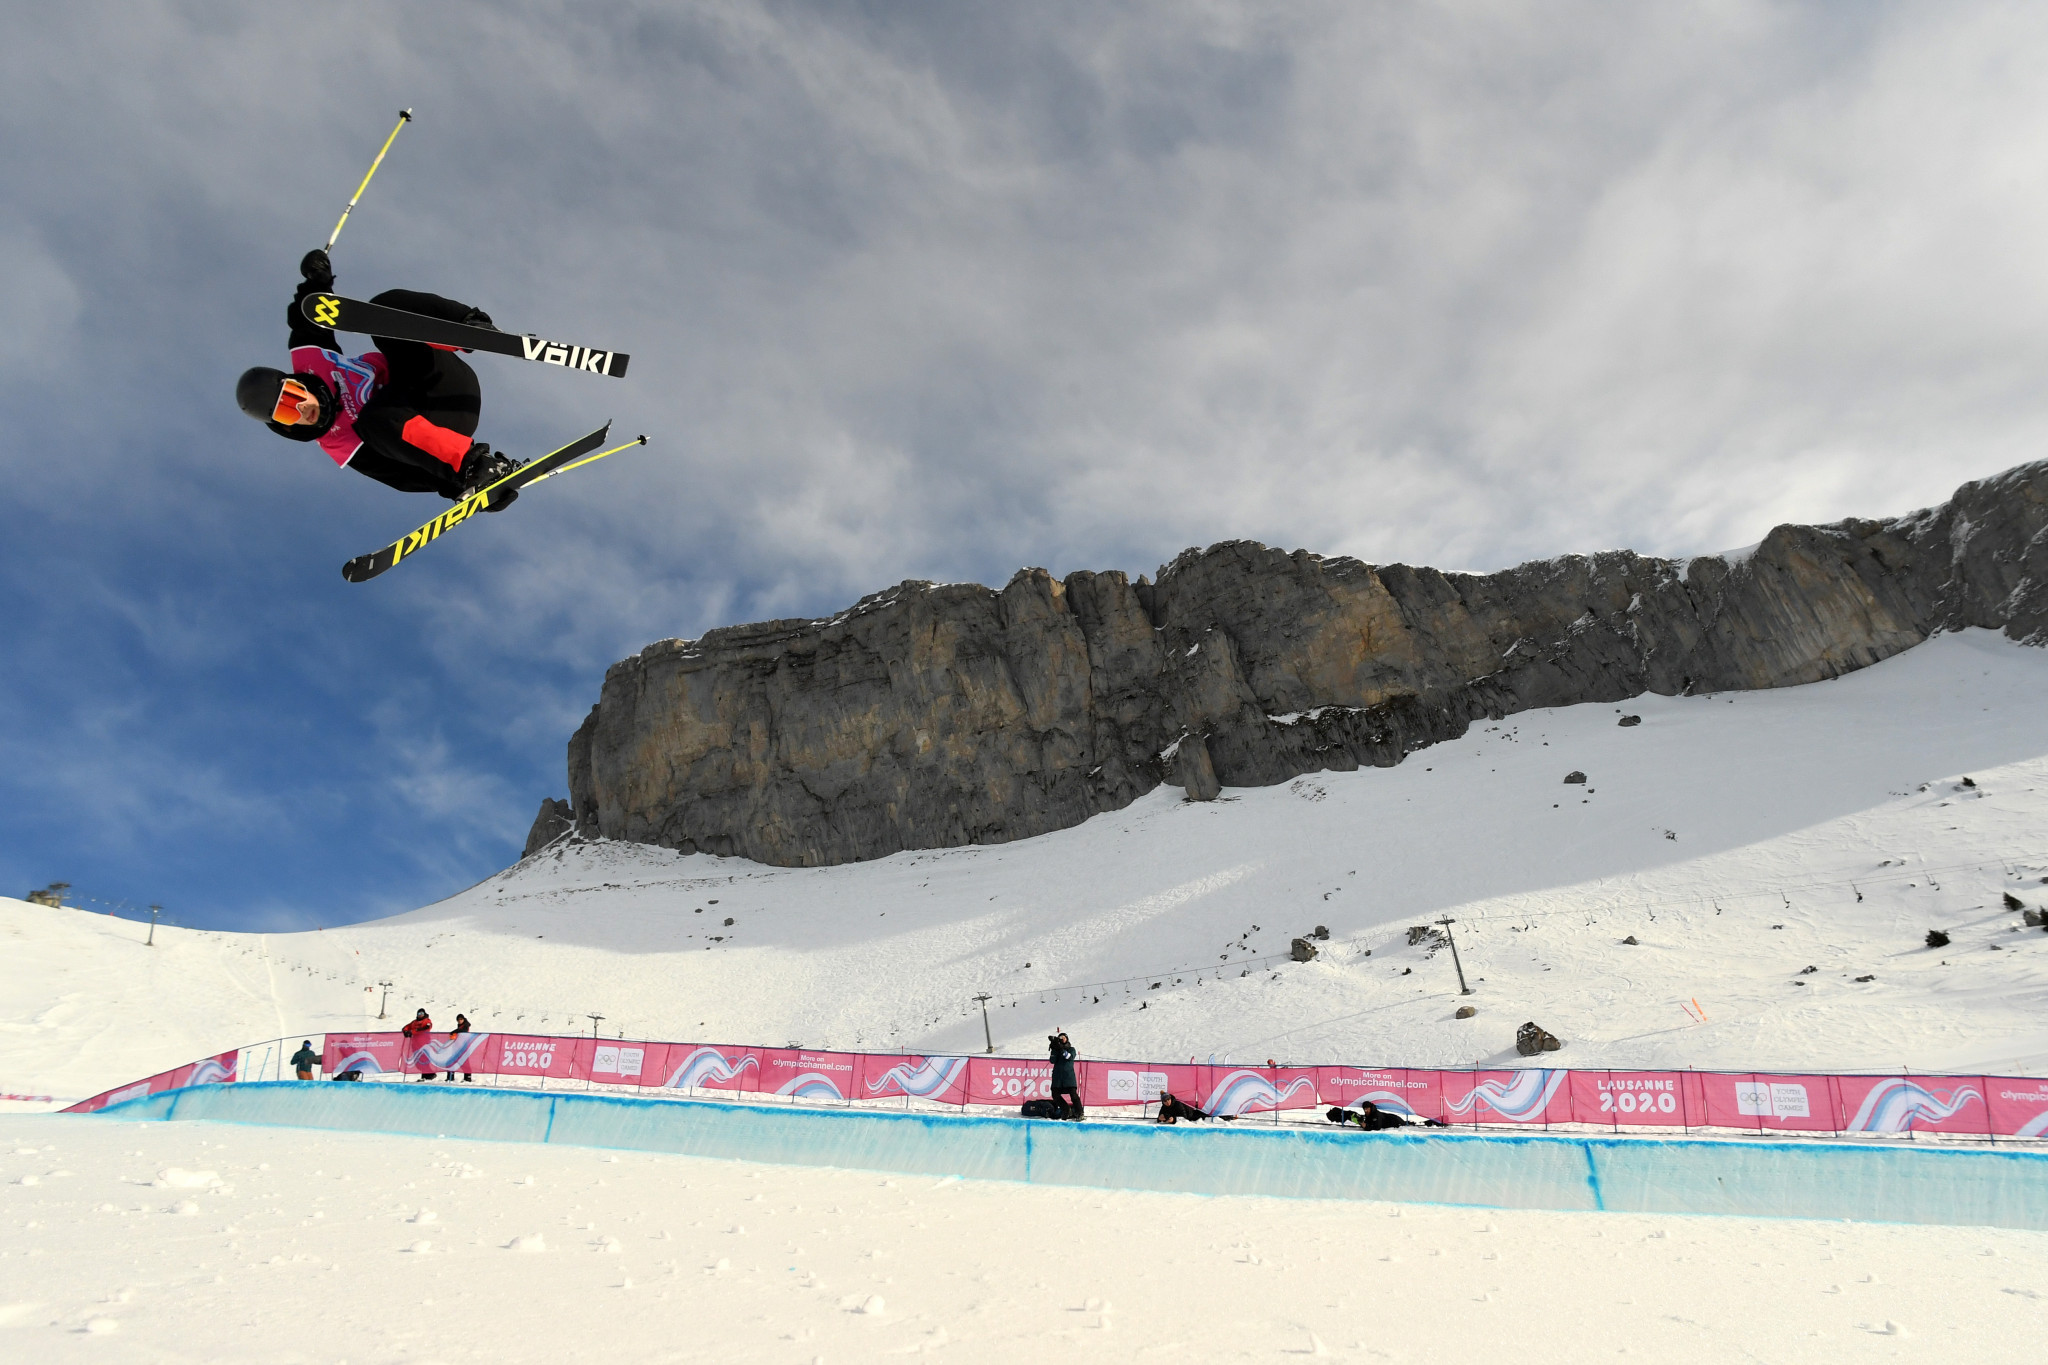 Longino wins freeski halfpipe final at Lausanne 2020 to earn first Canadian gold